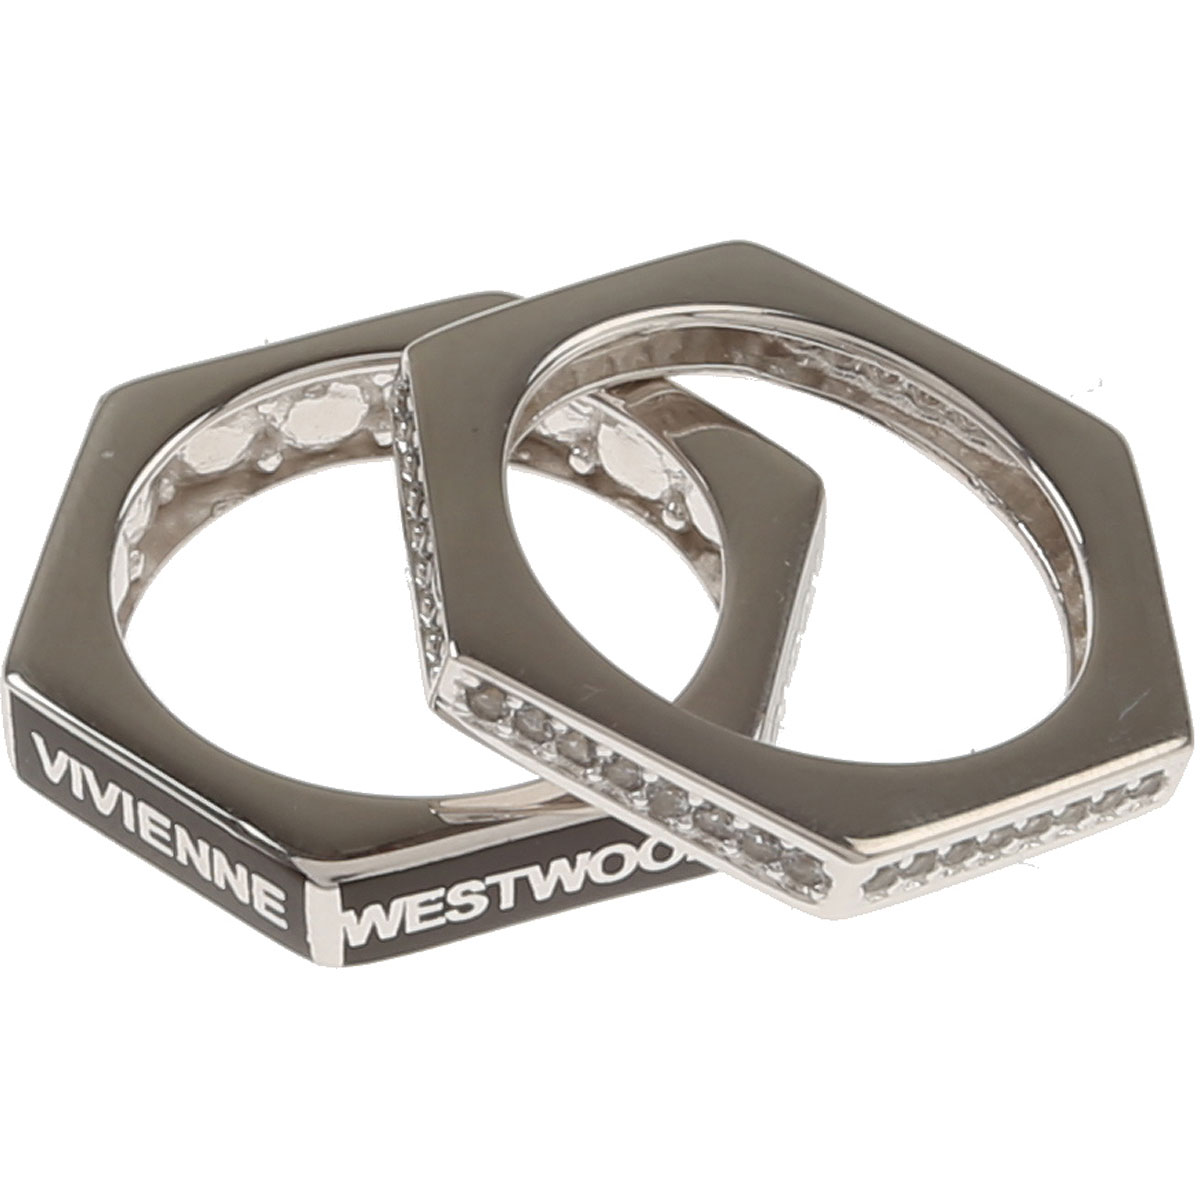 Image of Vivienne Westwood Ring for Men, Silver, Rhodium, 2017, Medium Large X-Large